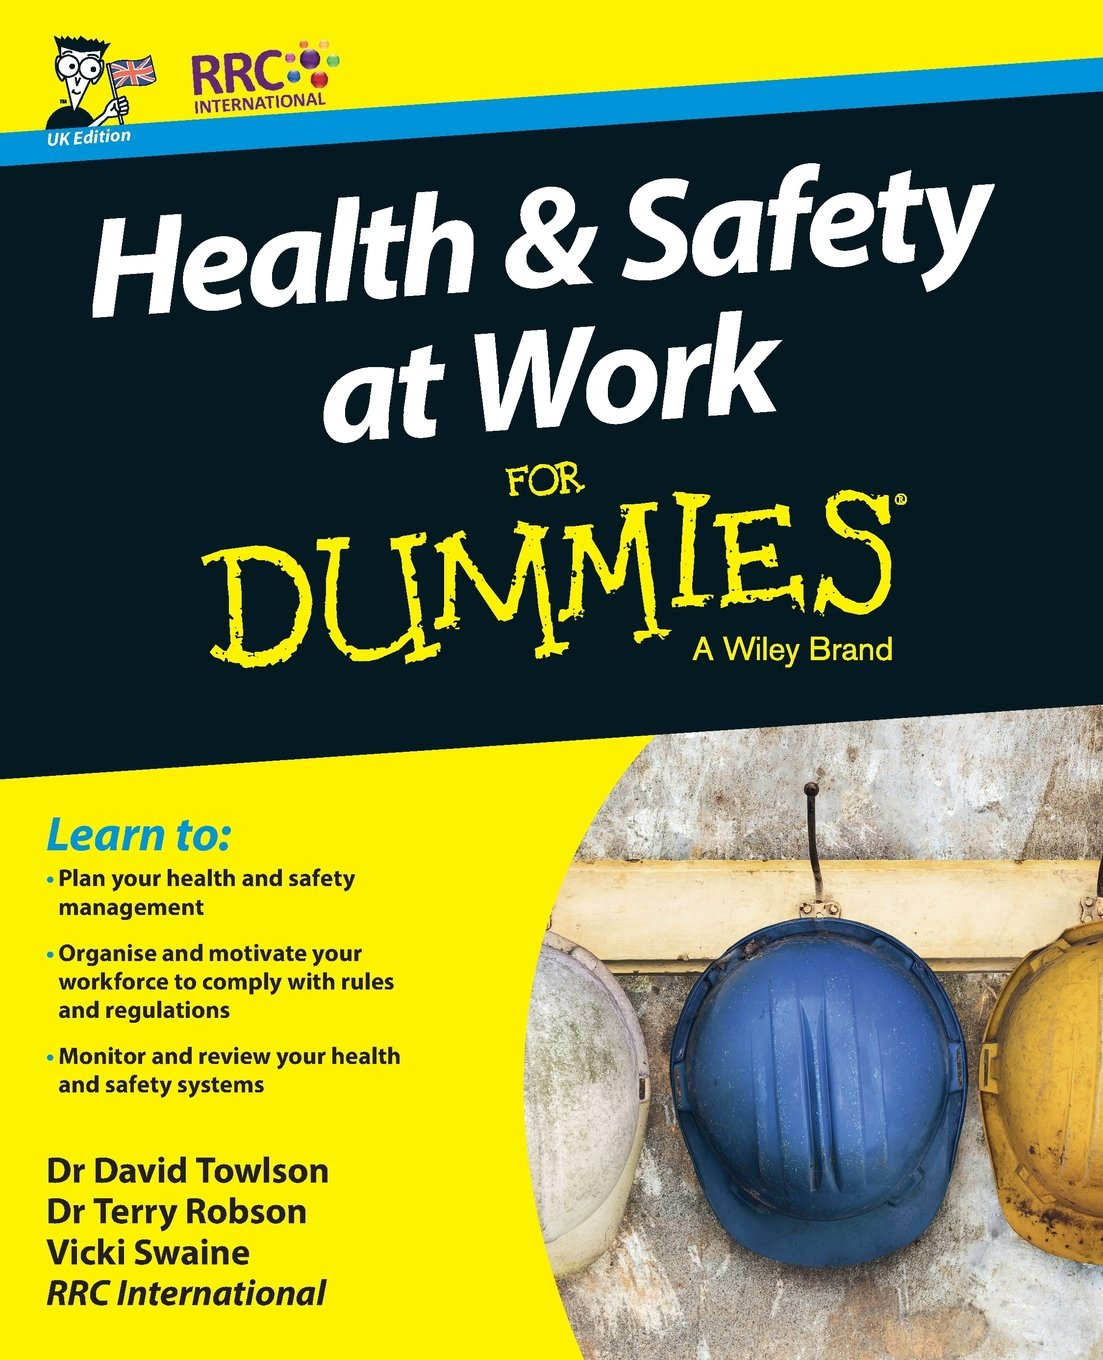 Cook and janitor, or How to save life in the workplace: instructions on labor protection